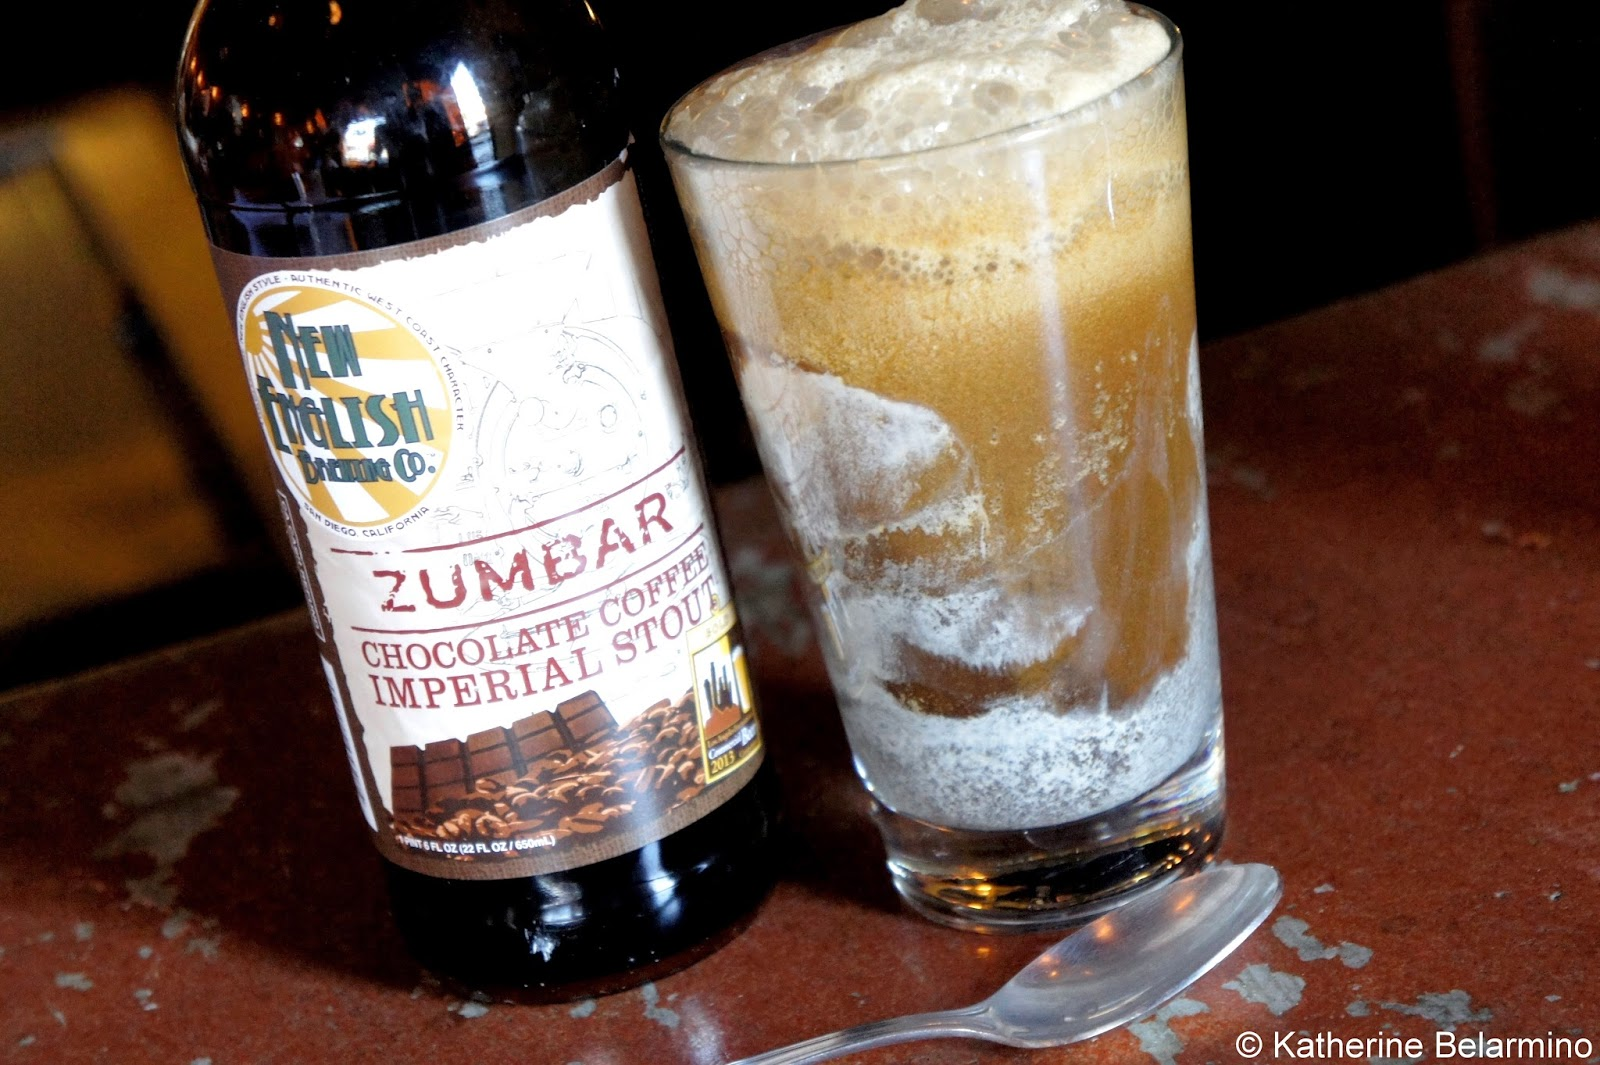 New English Brewing Company Zumbar Chocolate Coffee Imperial Stout Ice Cream Float Cueva Bar San Diego